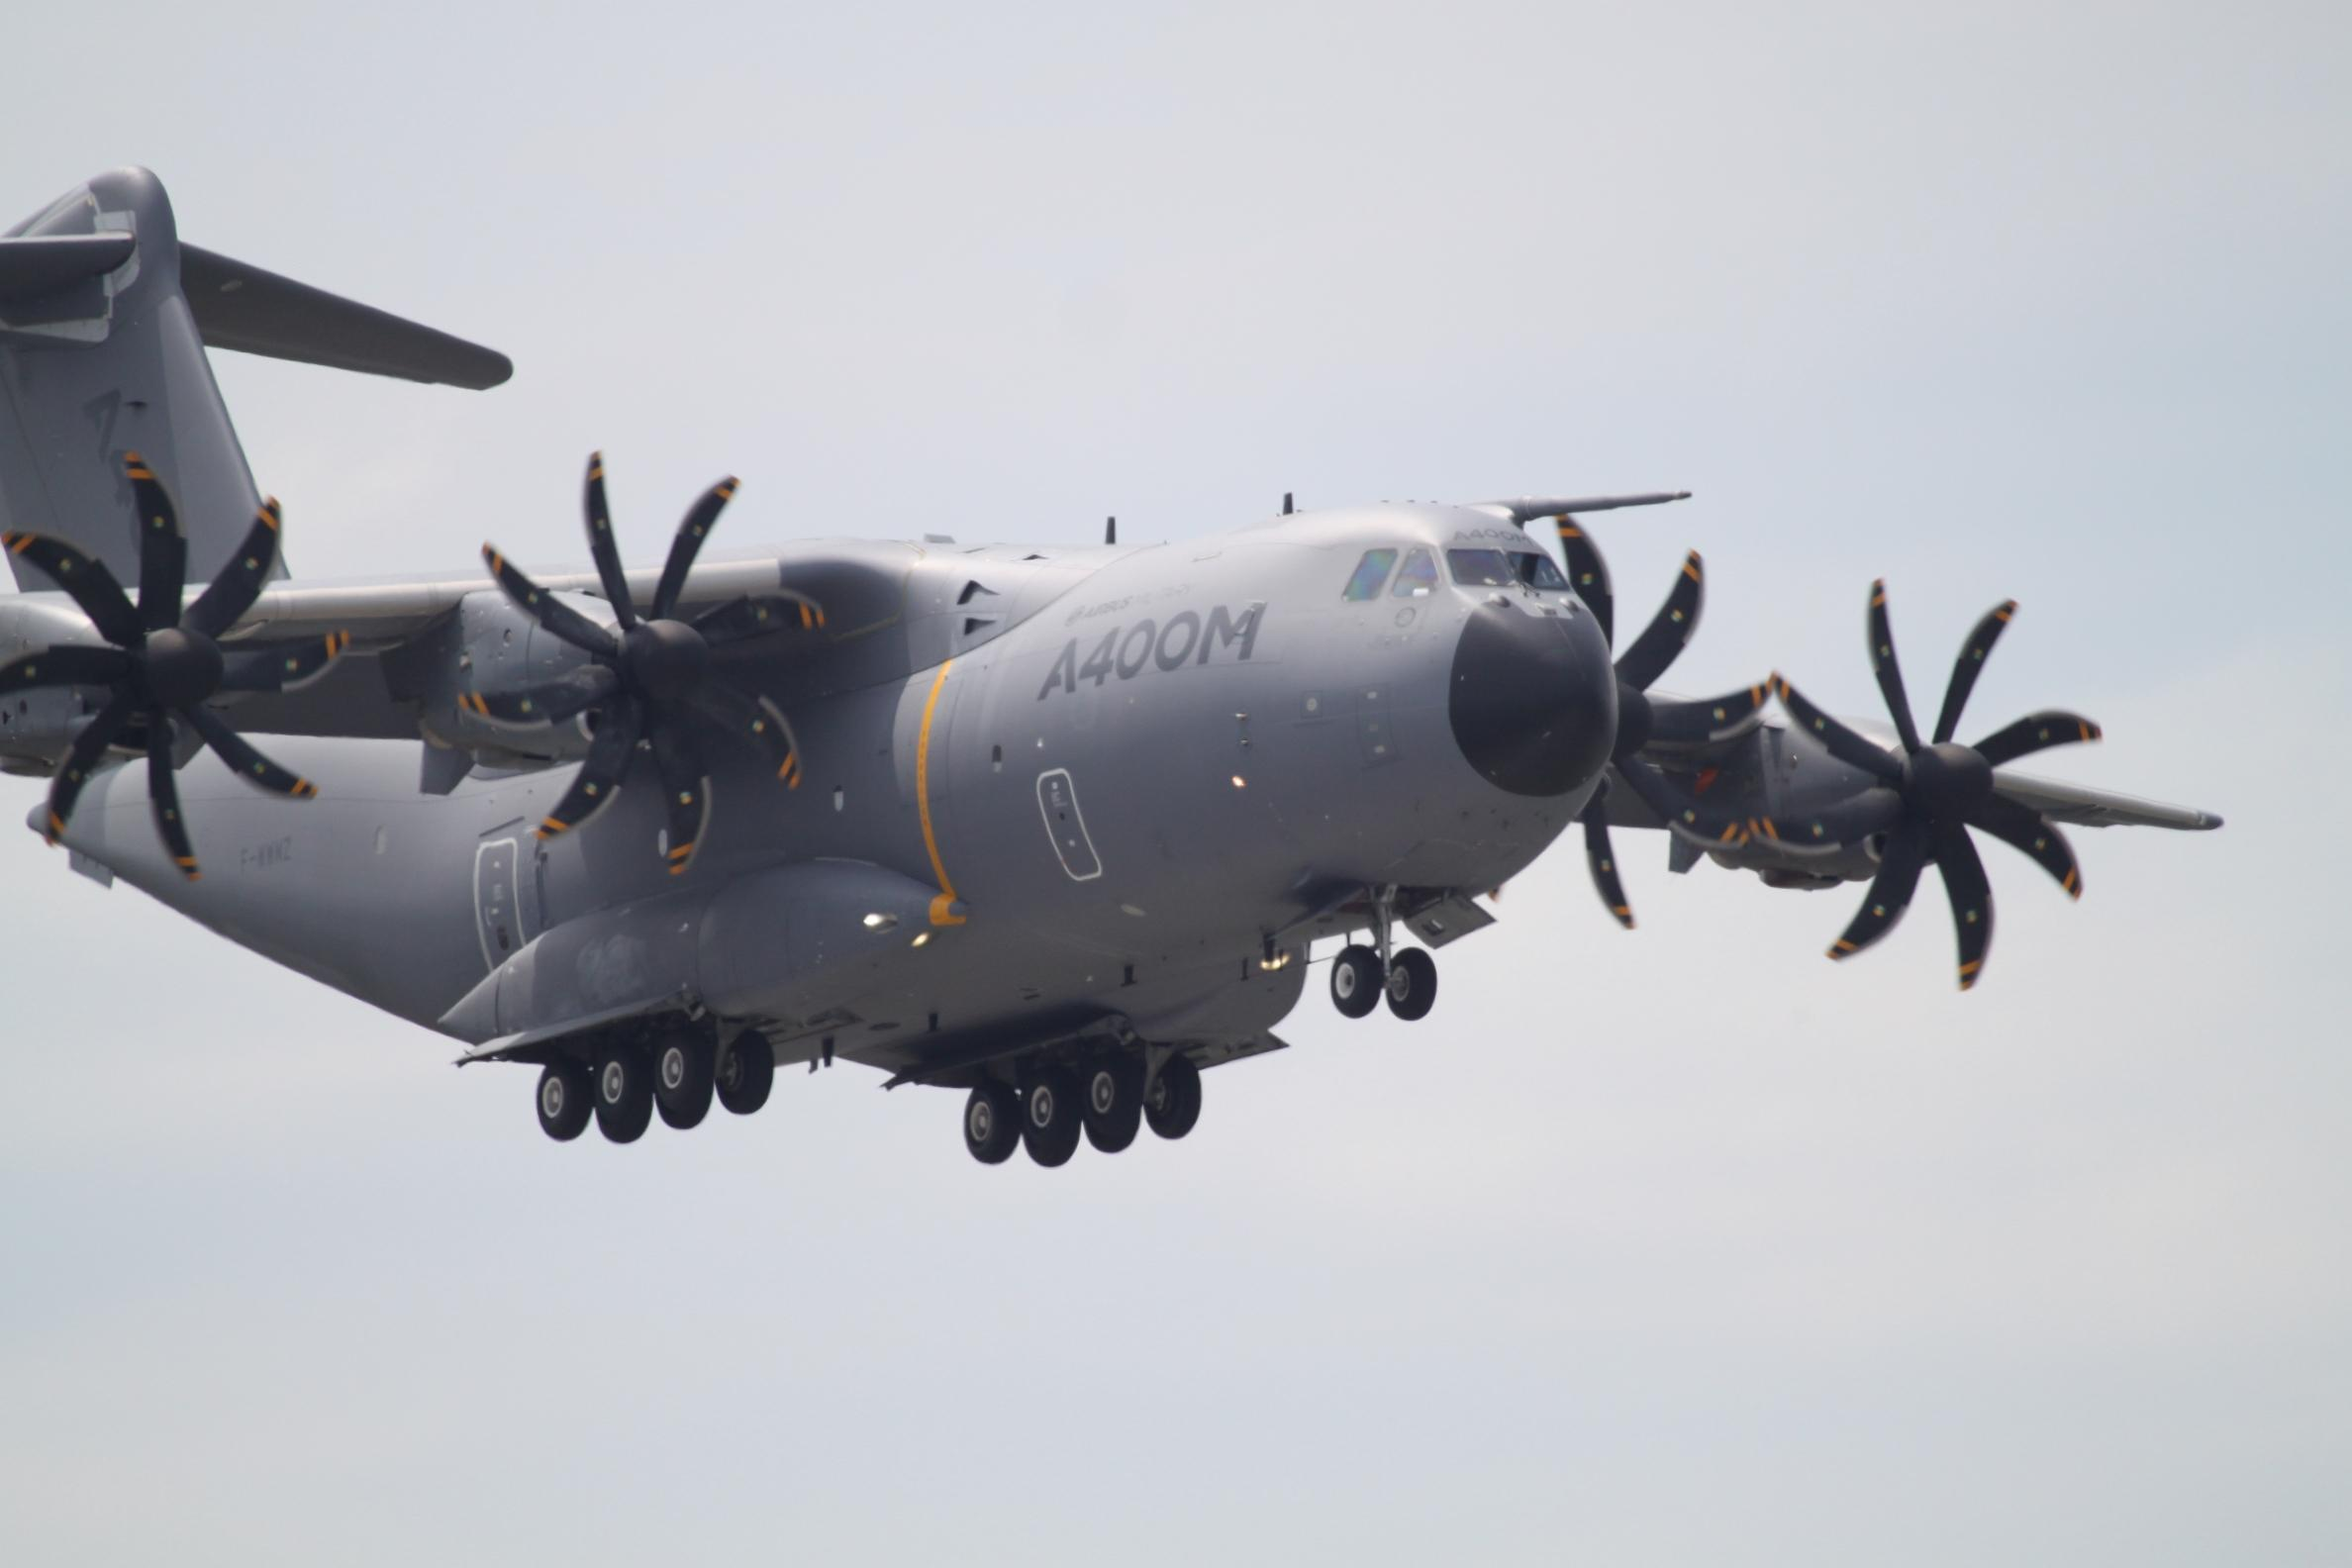 A400M at Le Bourget